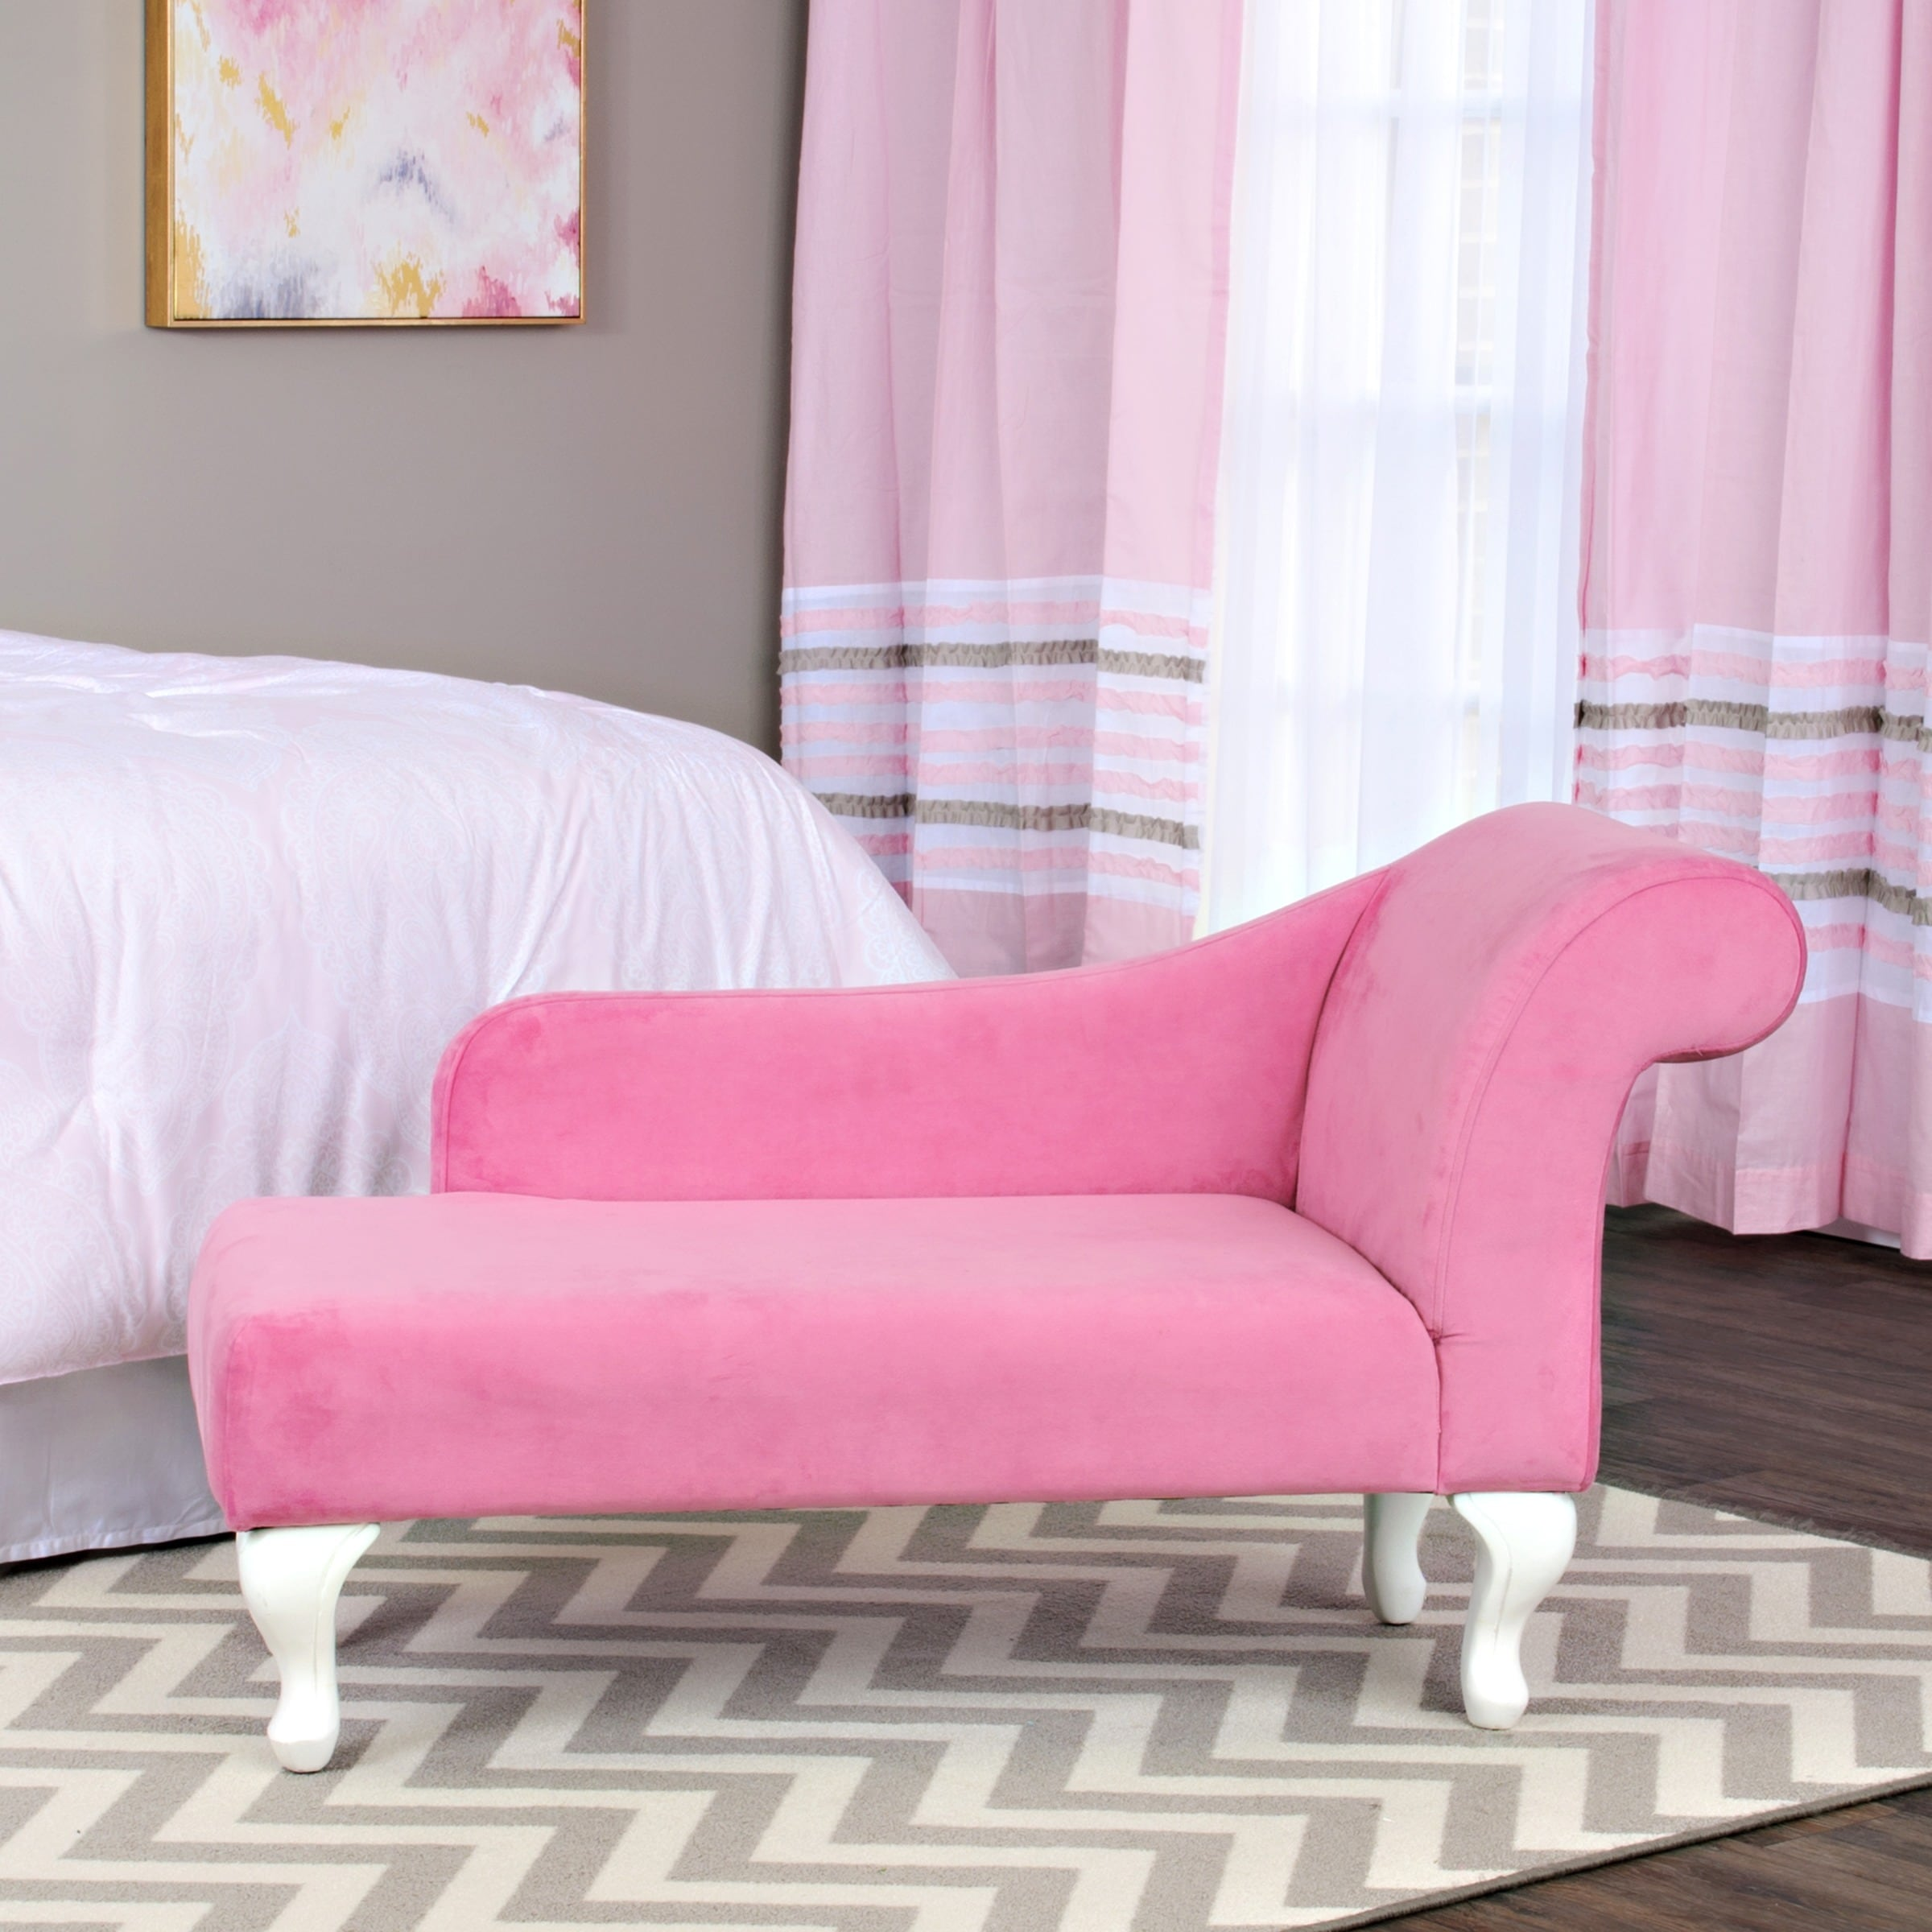 Famous HomePop Juvenile Chaise Lounge in Pink Velvet - Free Shipping  DP53